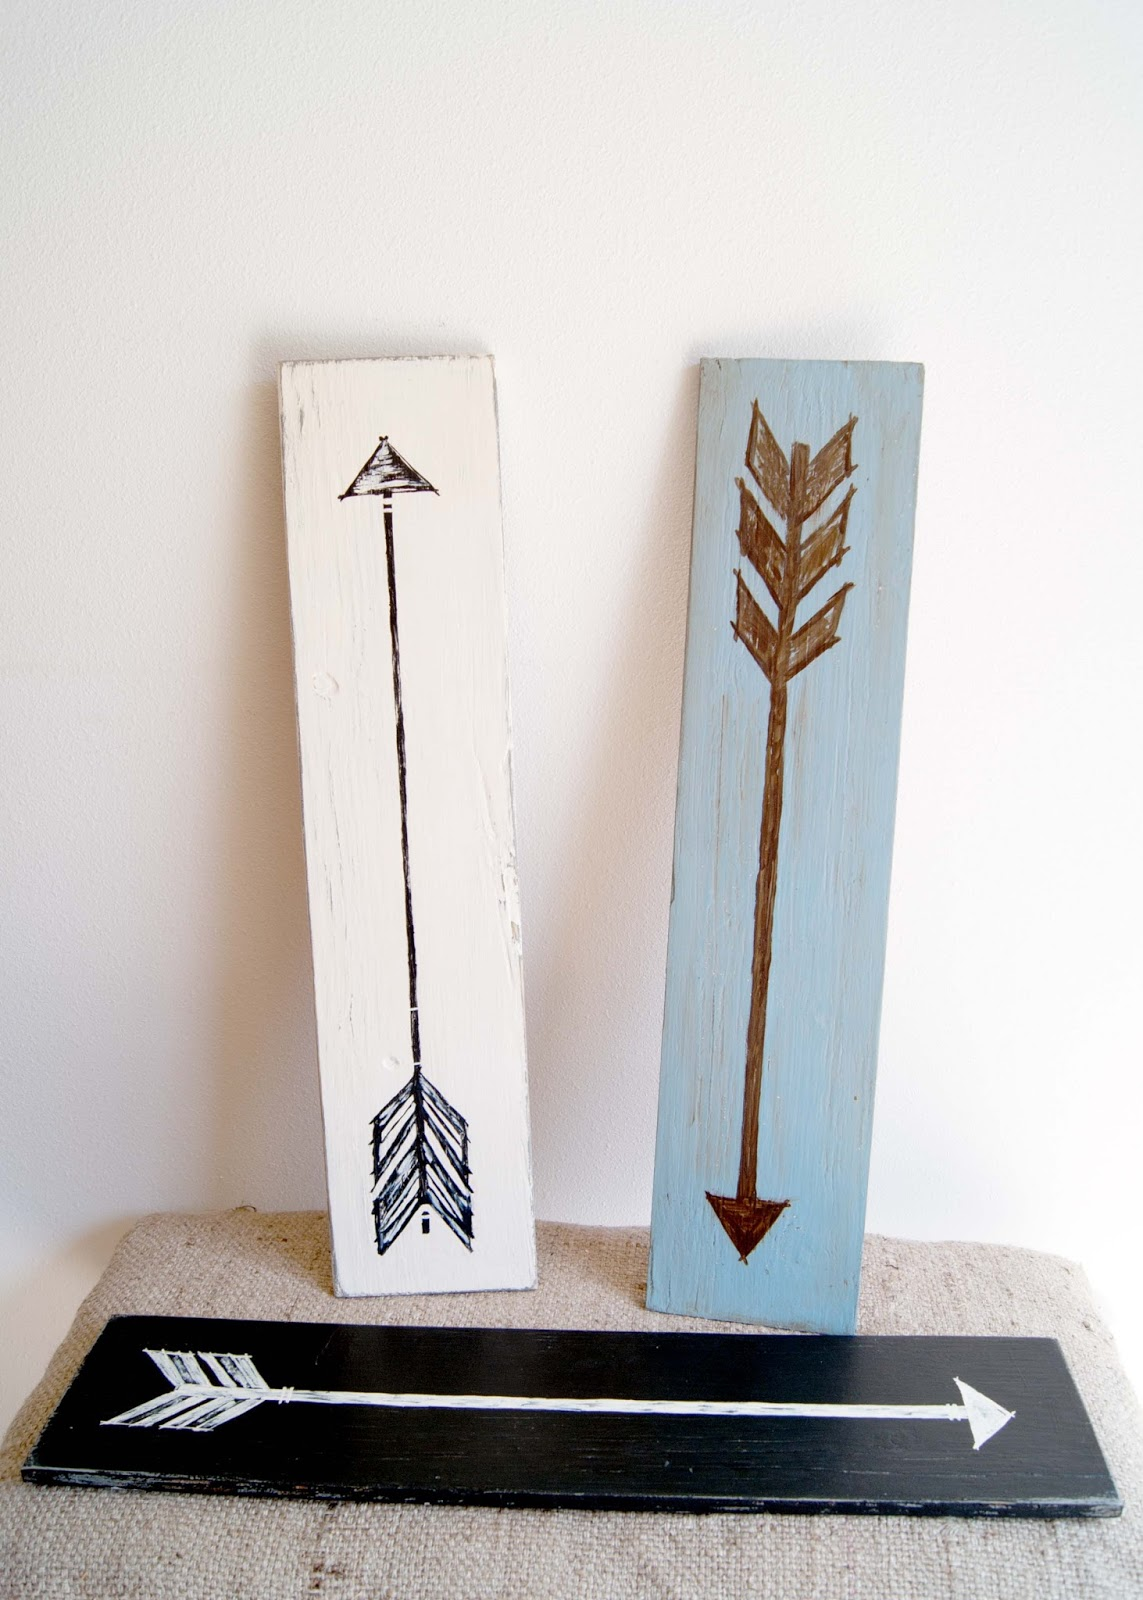 Hand Painted Arrow signs on wood